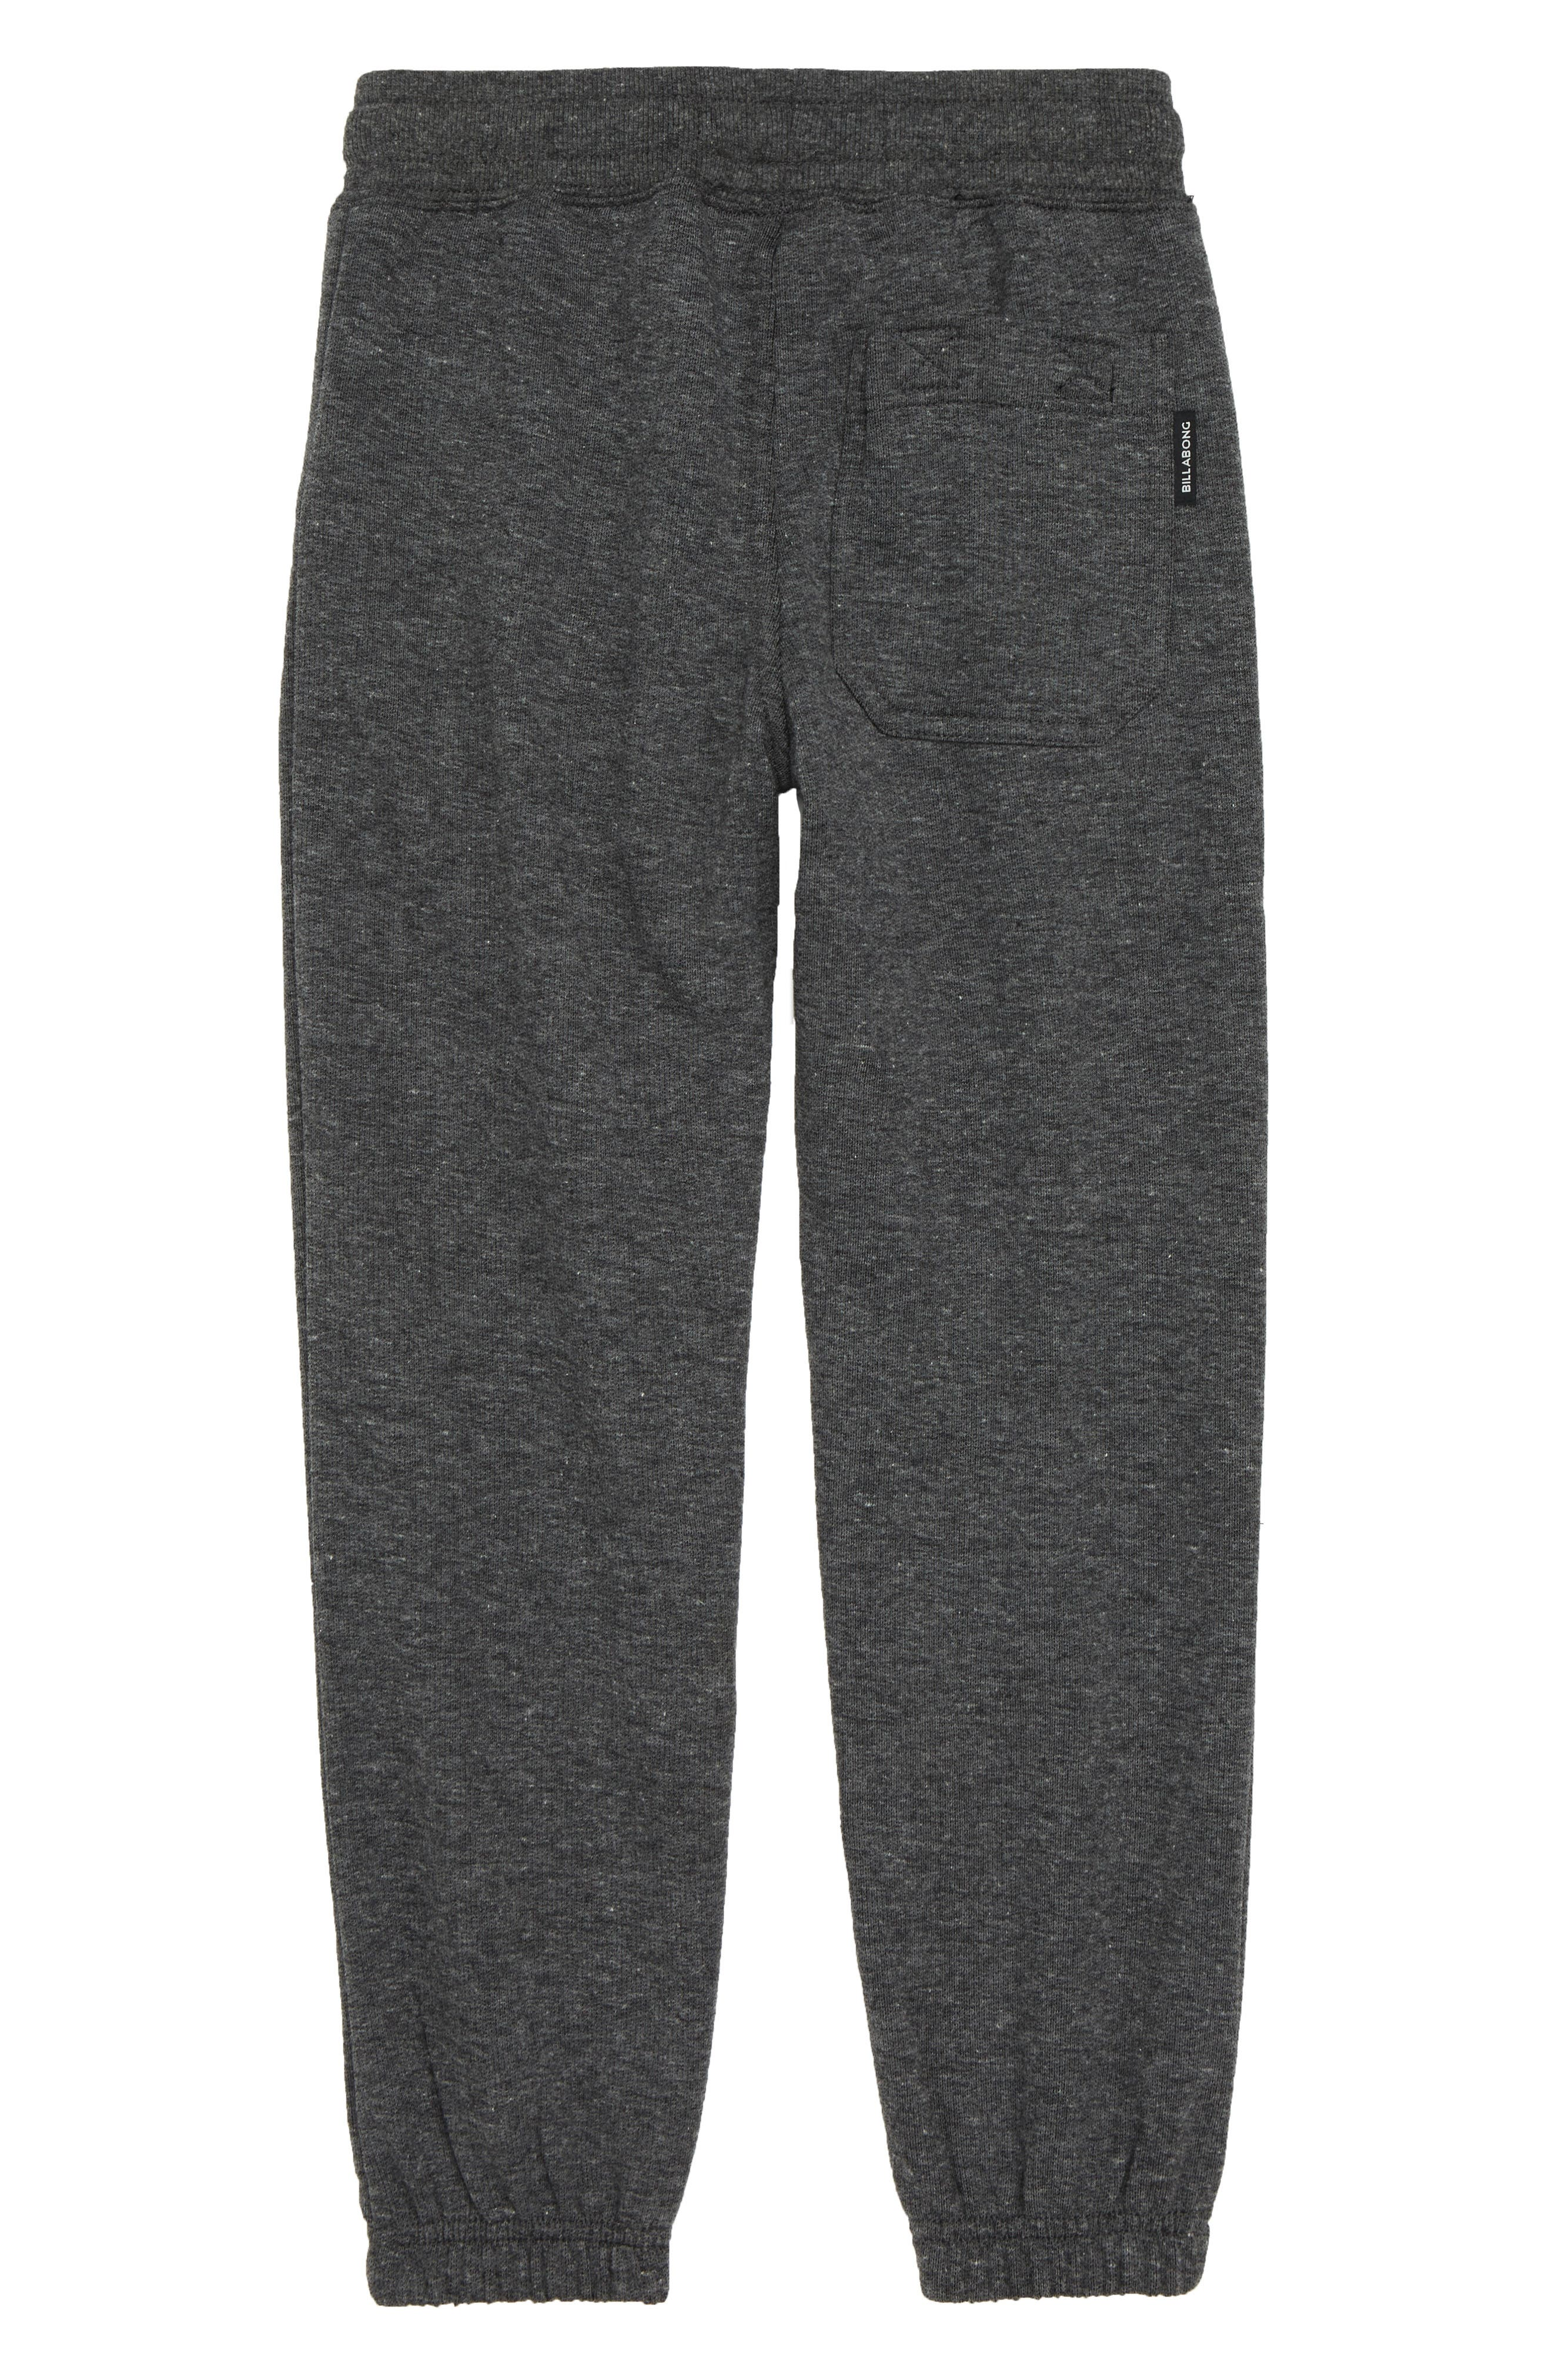 All Day Sweatpants,                             Alternate thumbnail 2, color,                             001